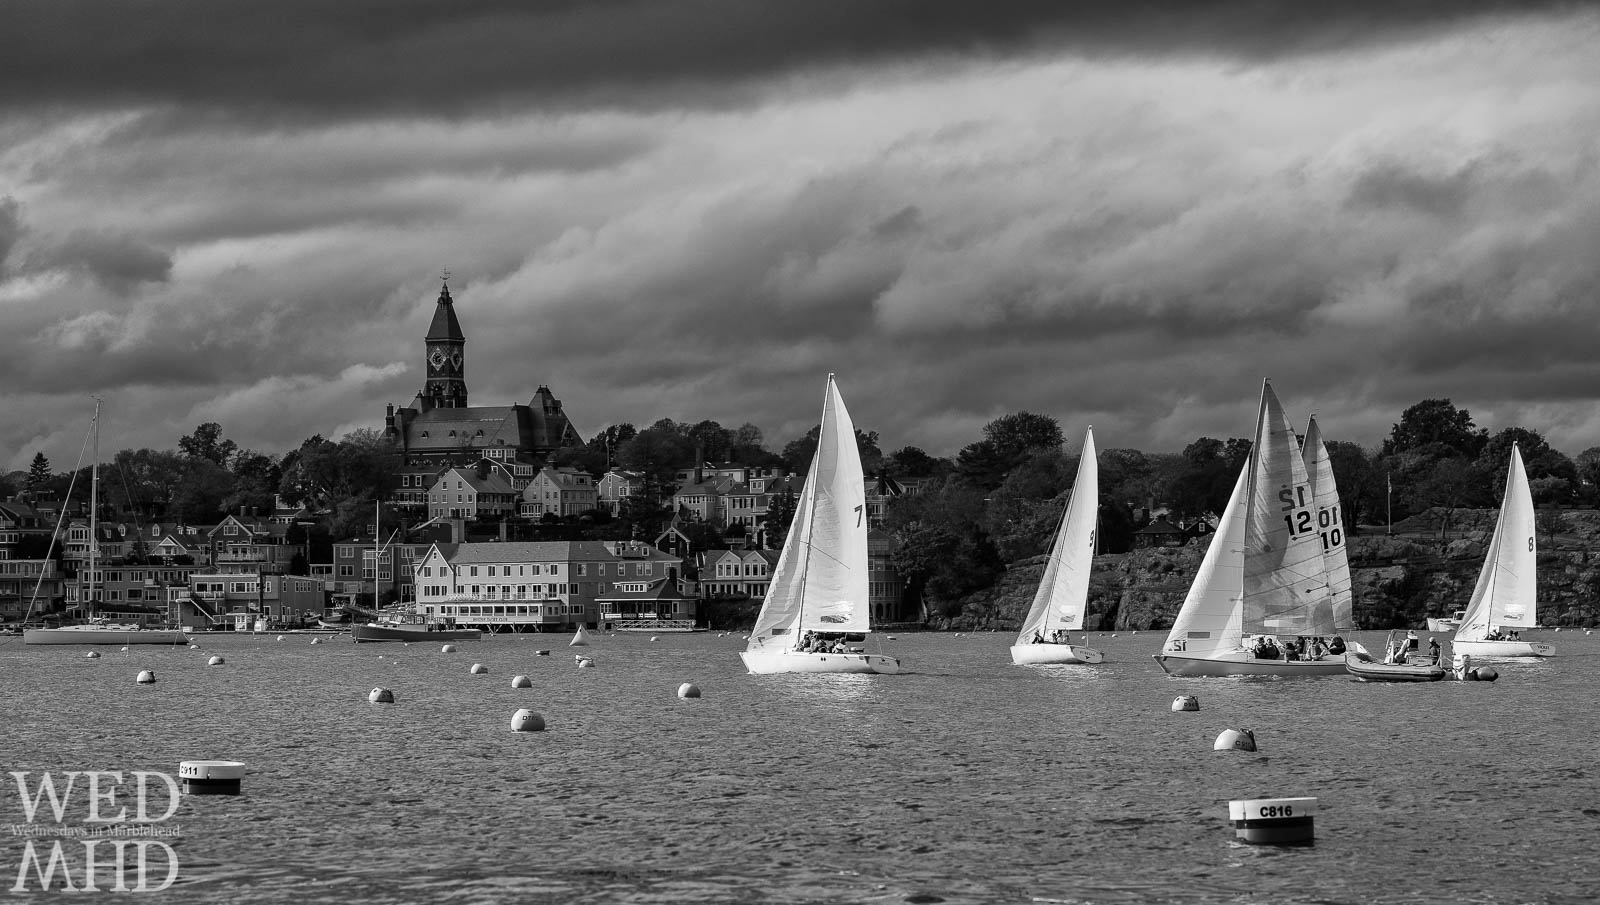 Boats are caught in a patch of sunlight setting sail toward Abbot Hall in this black and white image of the annual EYC Halloween Race